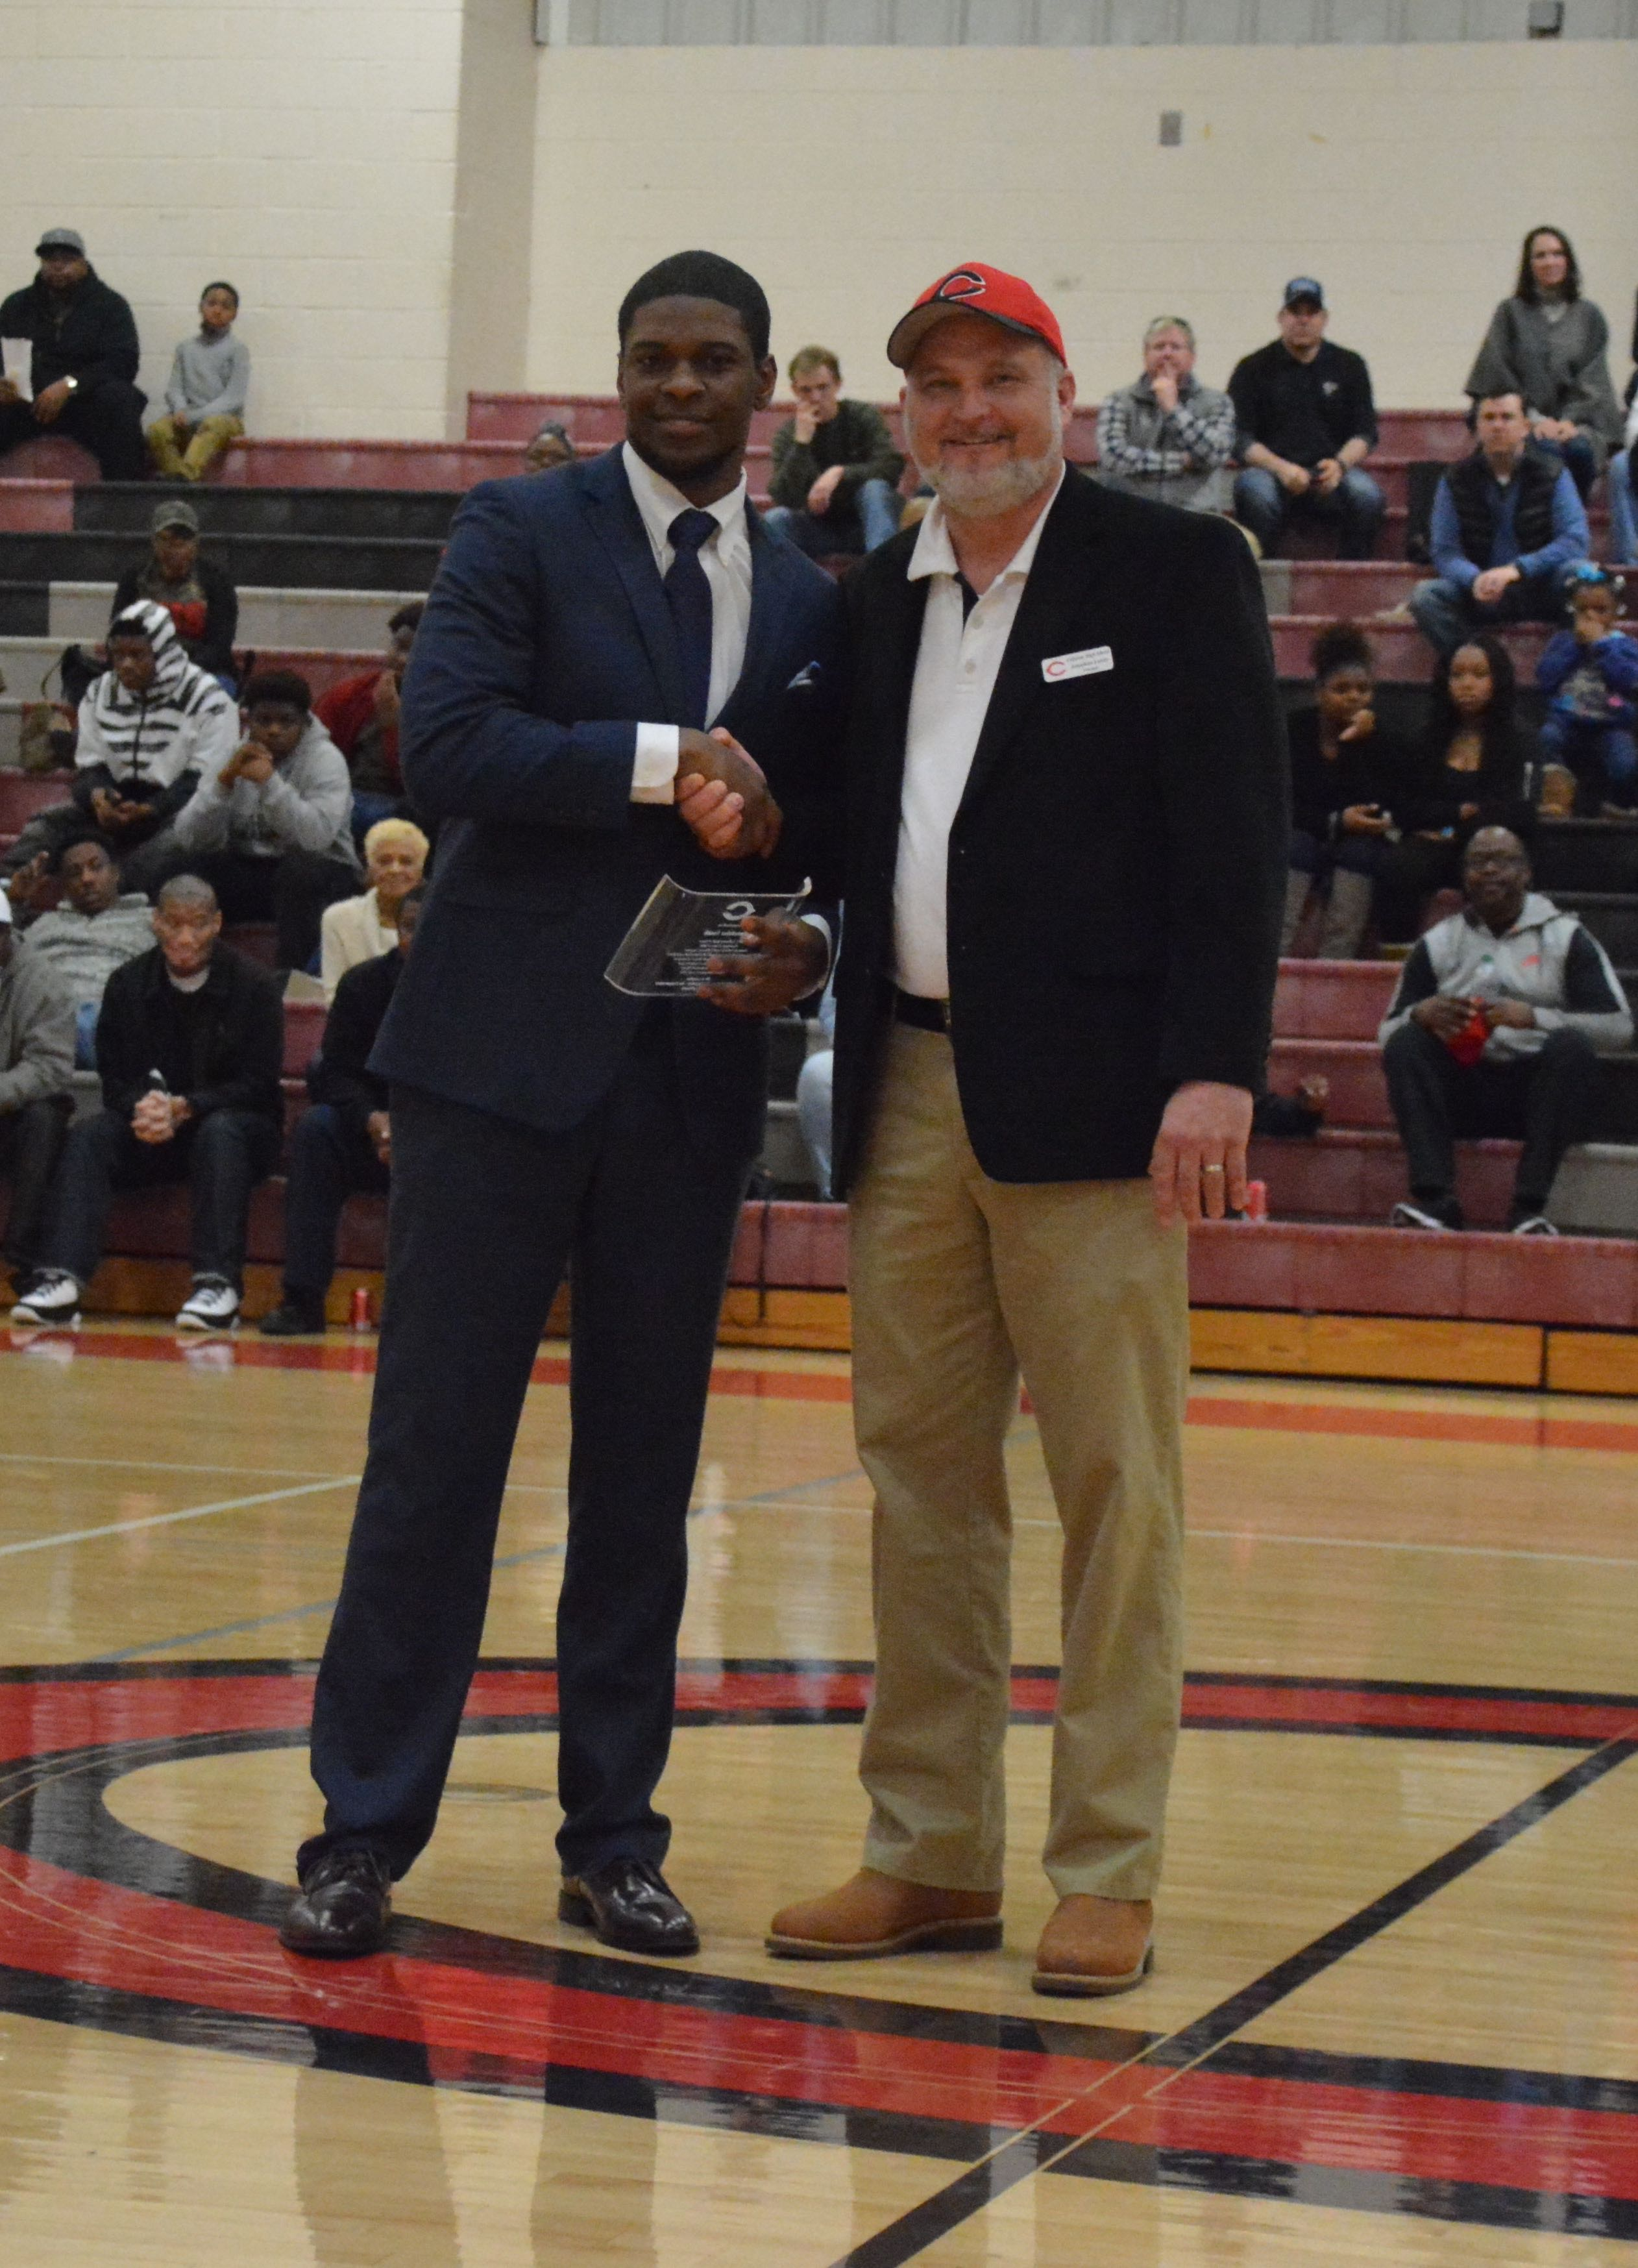 Demetrius Smith inducted into CHS Hall of Fame